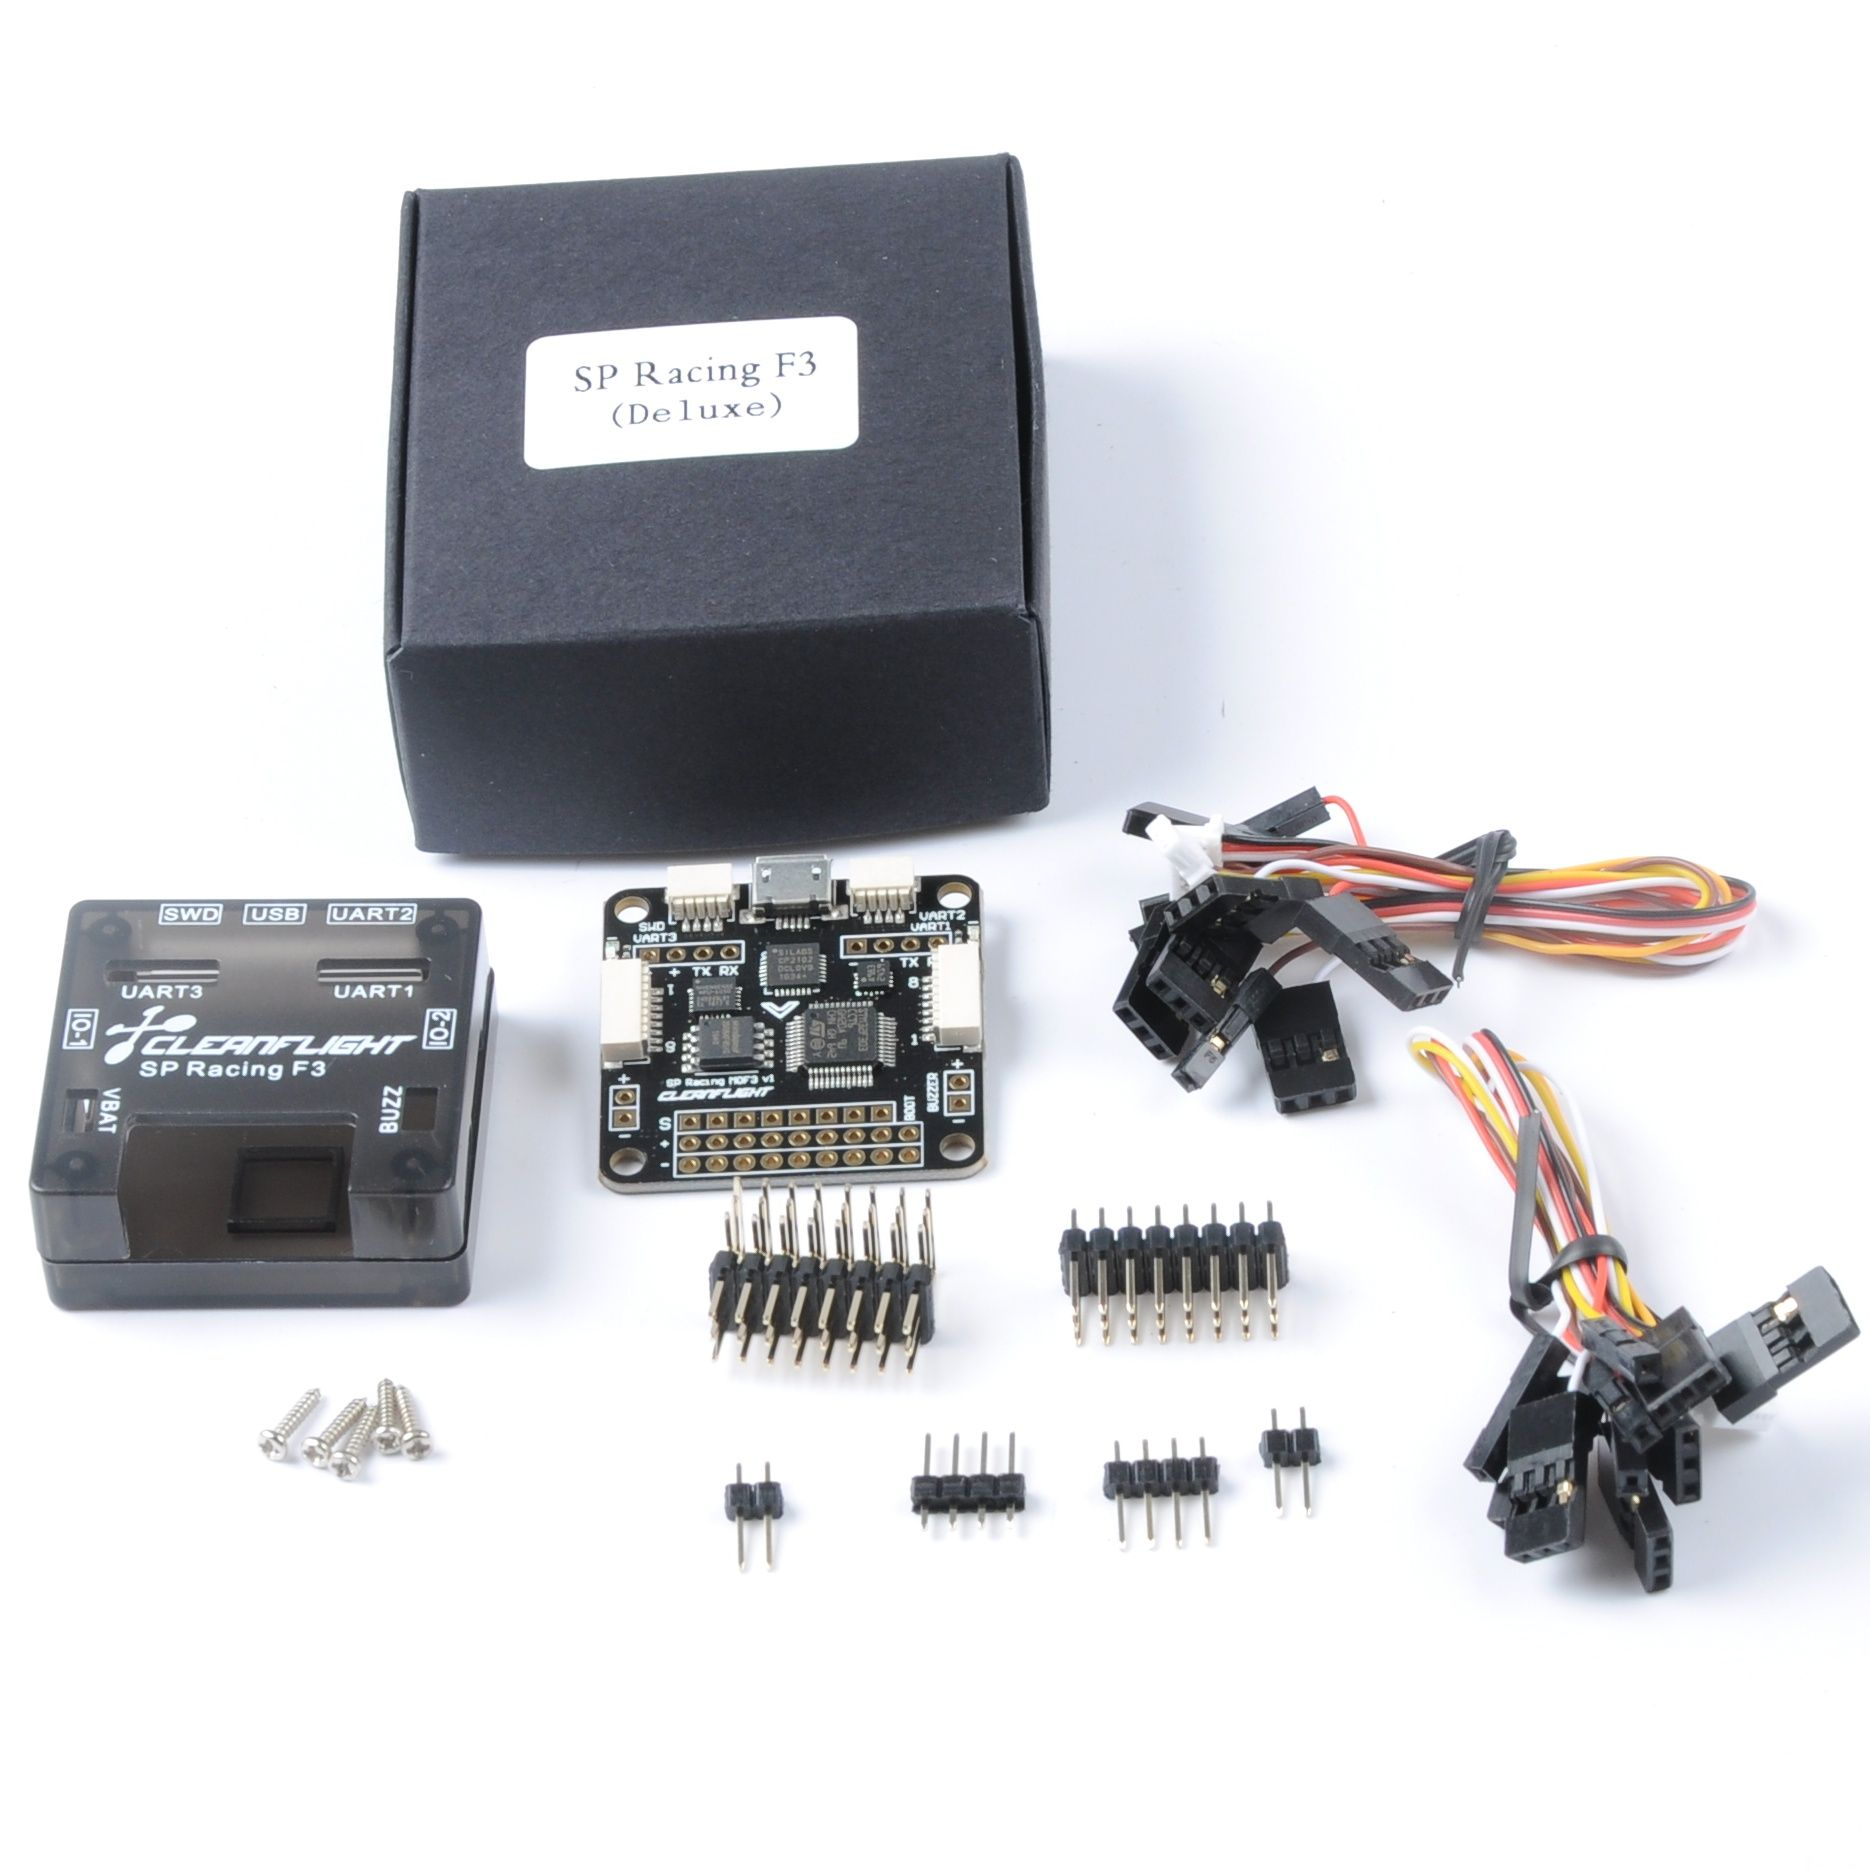 hight resolution of sp racing f3 flight controller deluxe for quadcopter drone multicopter mpu9250 gyro acceleration are integrated electronic compass sensors